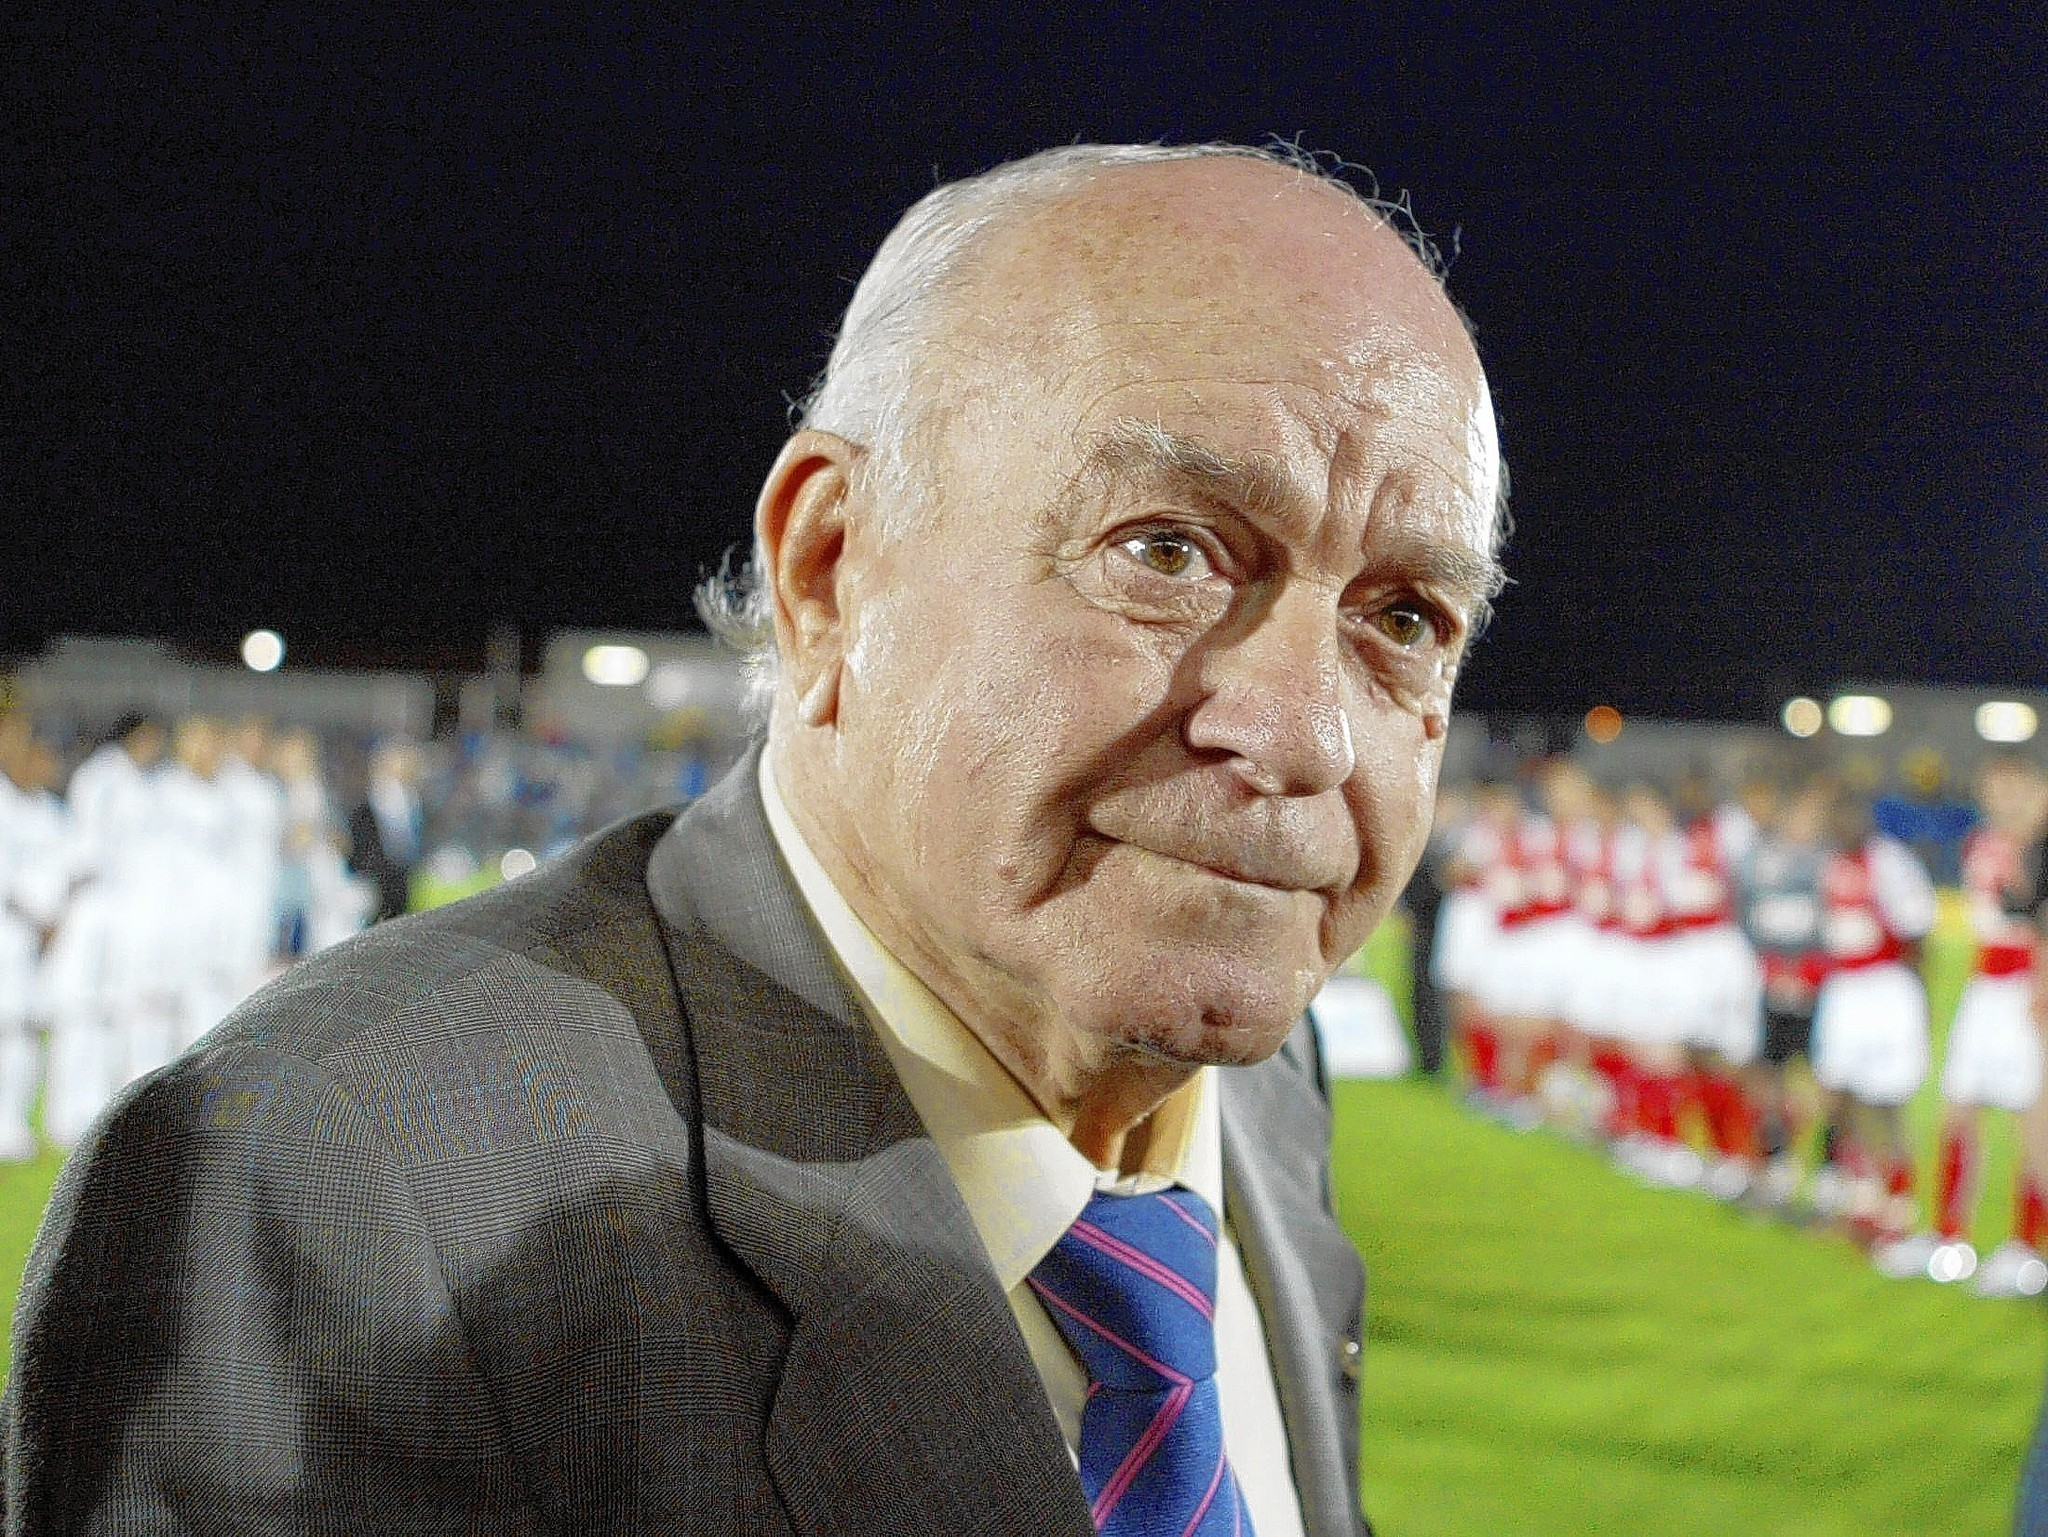 Alfredo Di Stefano s at 88 player led Real Madrid to 5